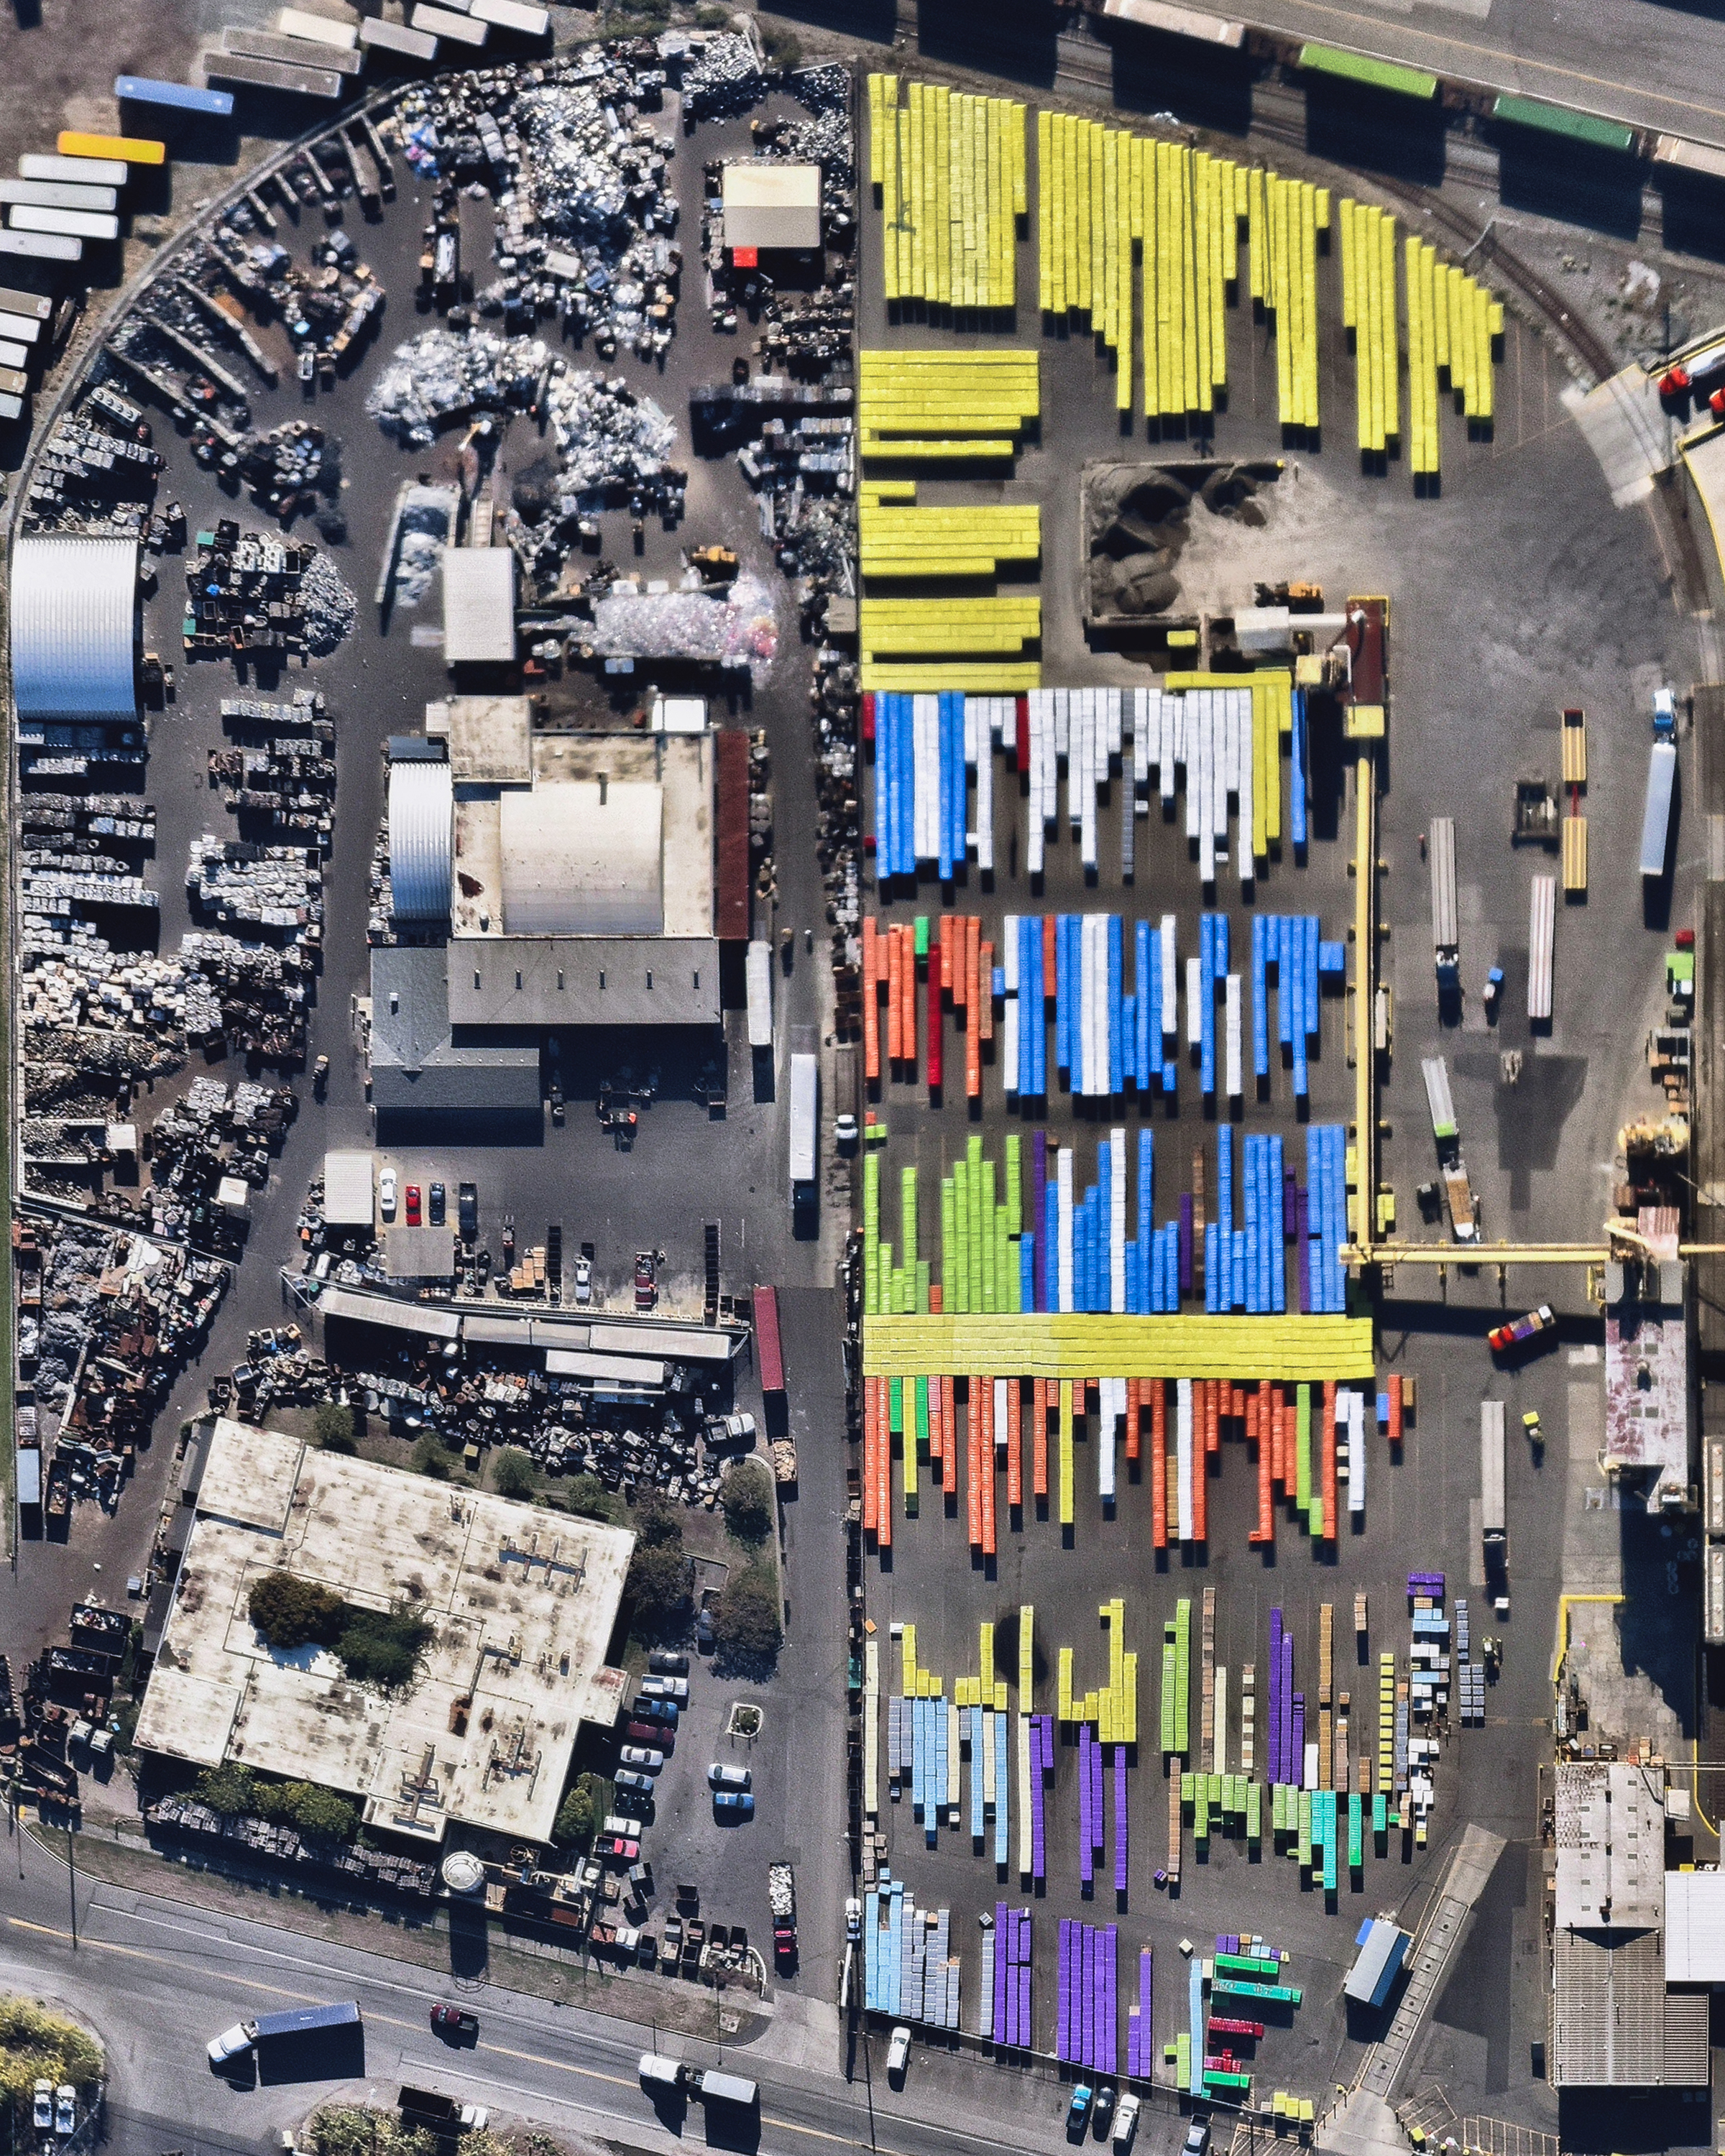 "Brightly colored shipping containers are stacked next to a scrap metal storage yard at the Port of Tacoma, Washington. This facility takes in a variety of scrap metals from commercial, industrial and public sources throughout the Pacific Northwest and then sorts, packages and ships it to recycling plants, mills and foundries around the world. In 2015, the Port of Tacoma handled $52.1 billion in international trade, importing and exporting 19 million short tons of cargo.  47°15'33.5""N, 122°24'20.2""W  Source imagery: Nearmap"